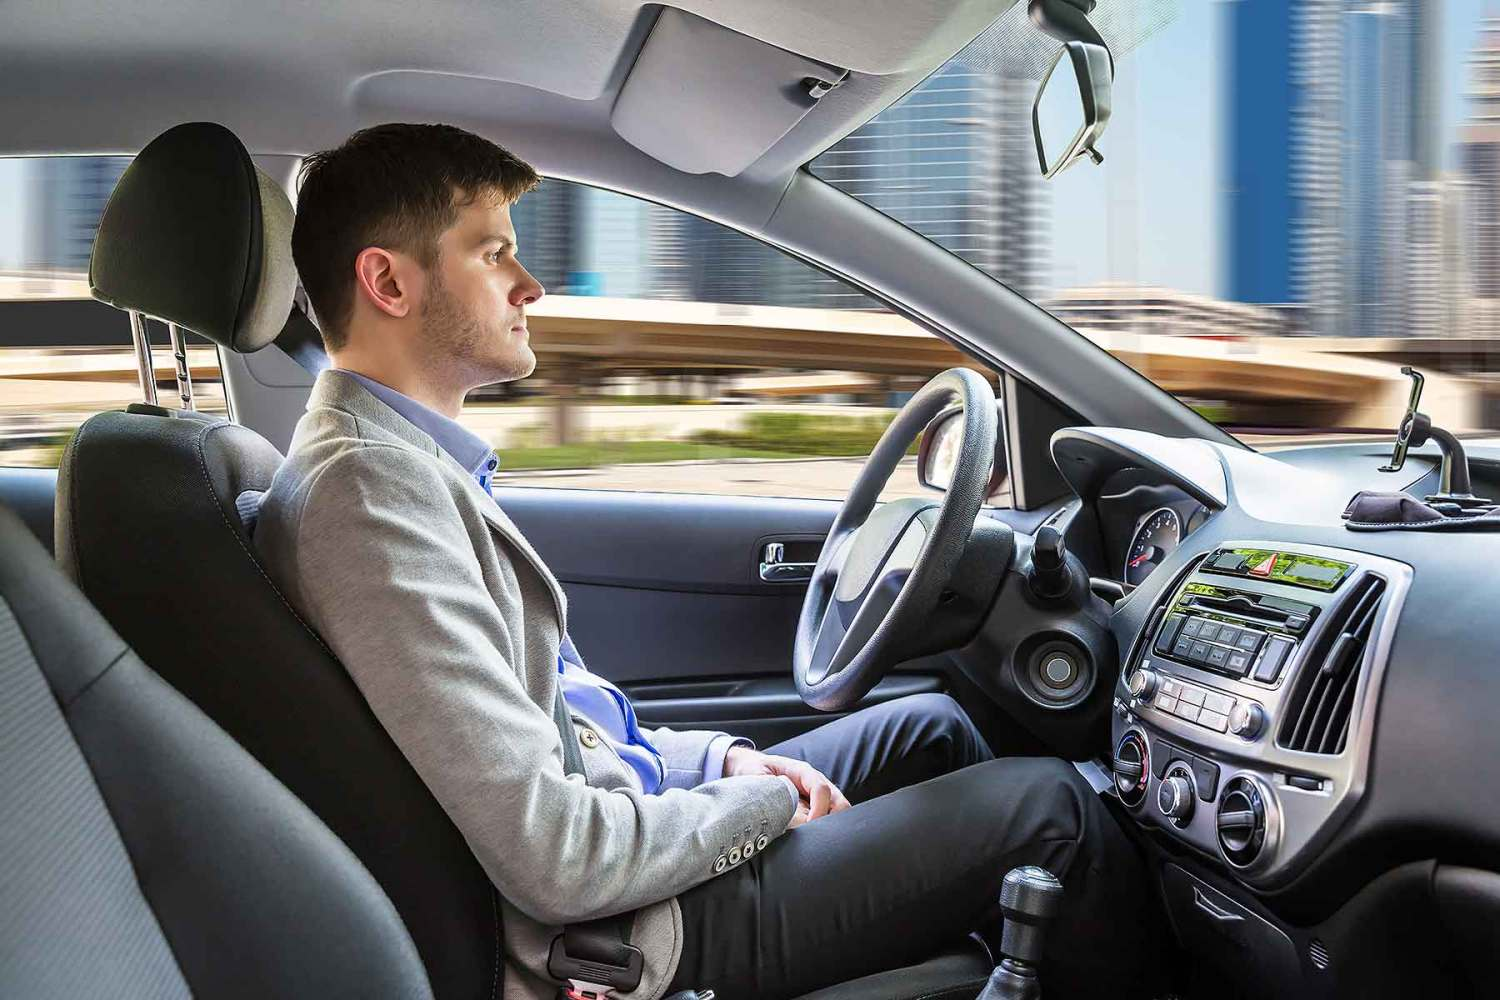 Assisted-drive cars are not autonomous cars